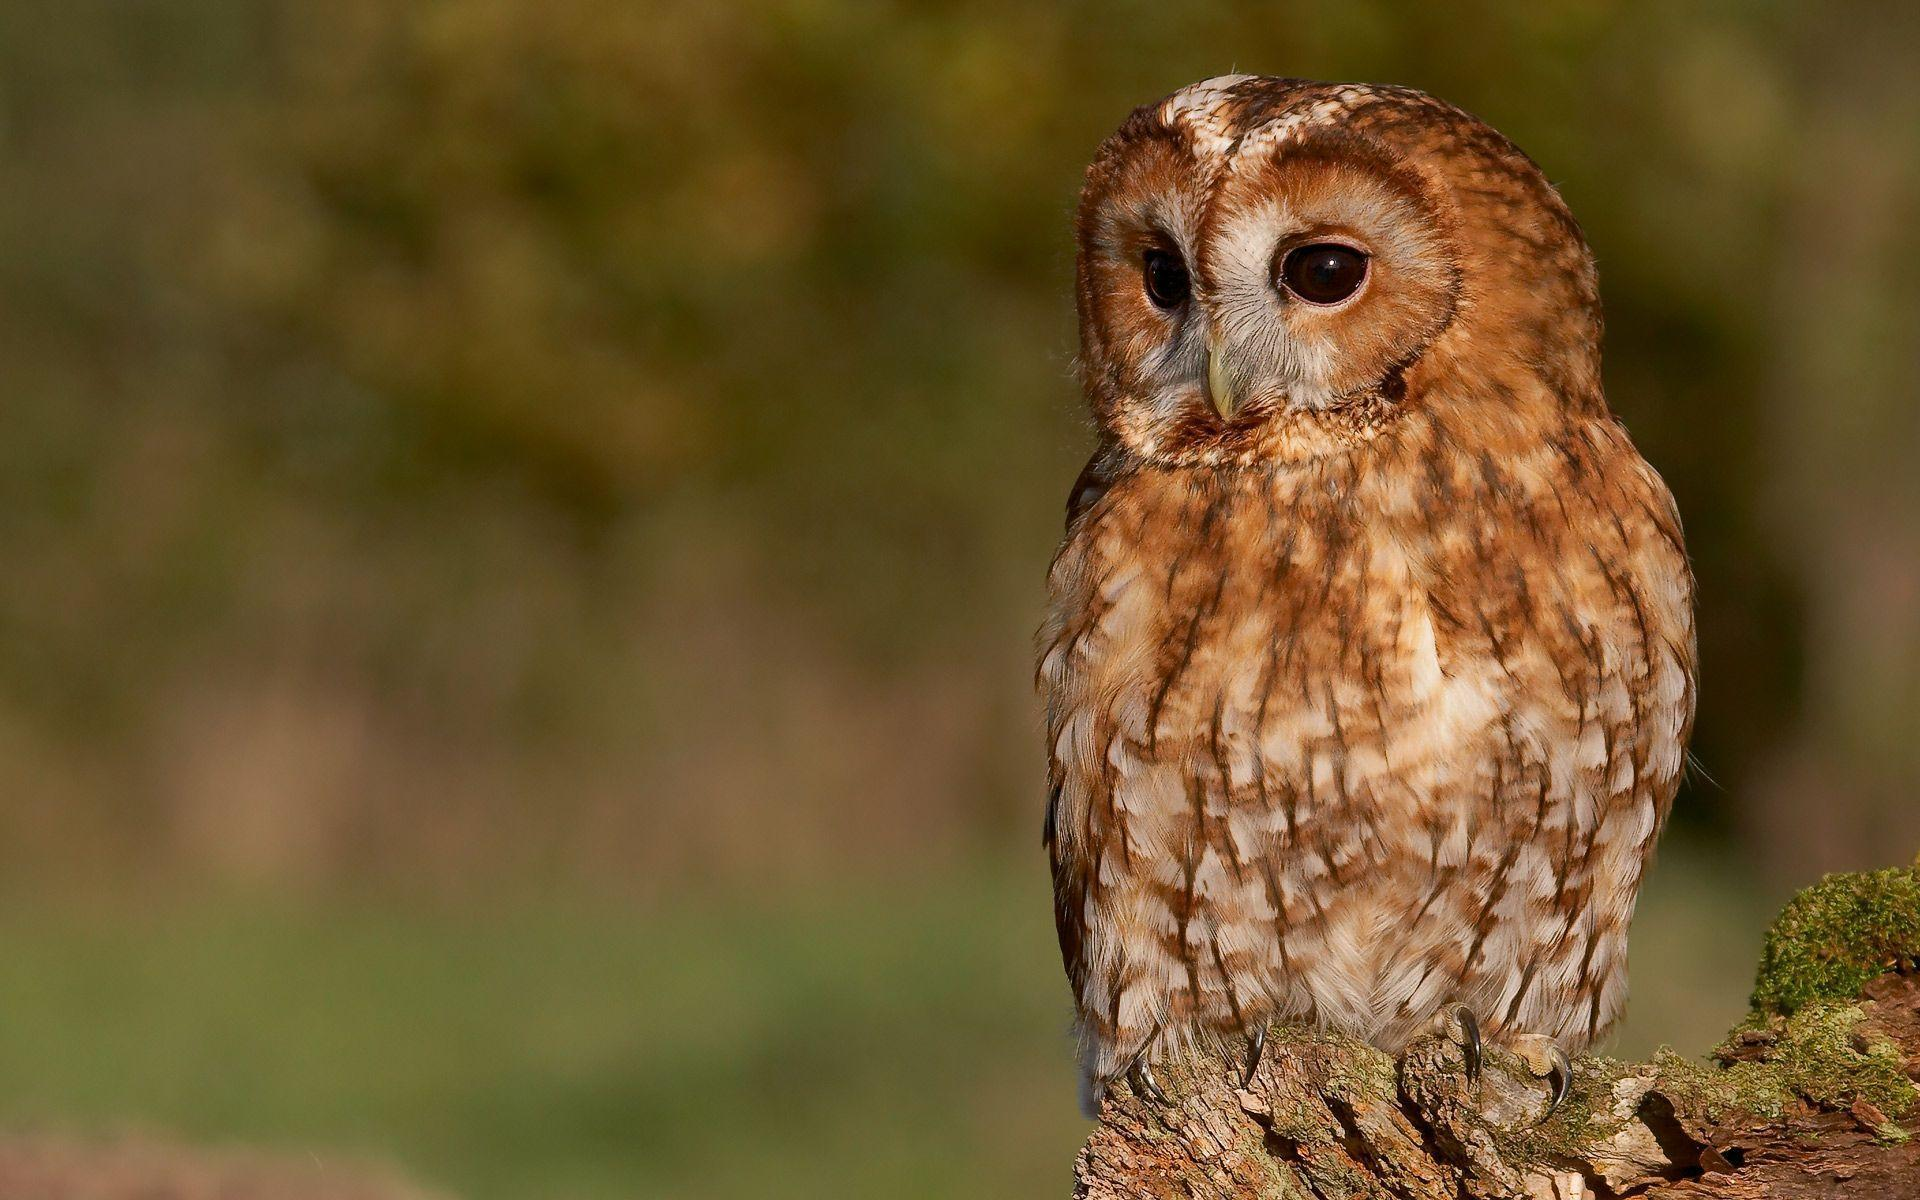 Tawny Owl Wallpaper by Photosbykev on DeviantArt